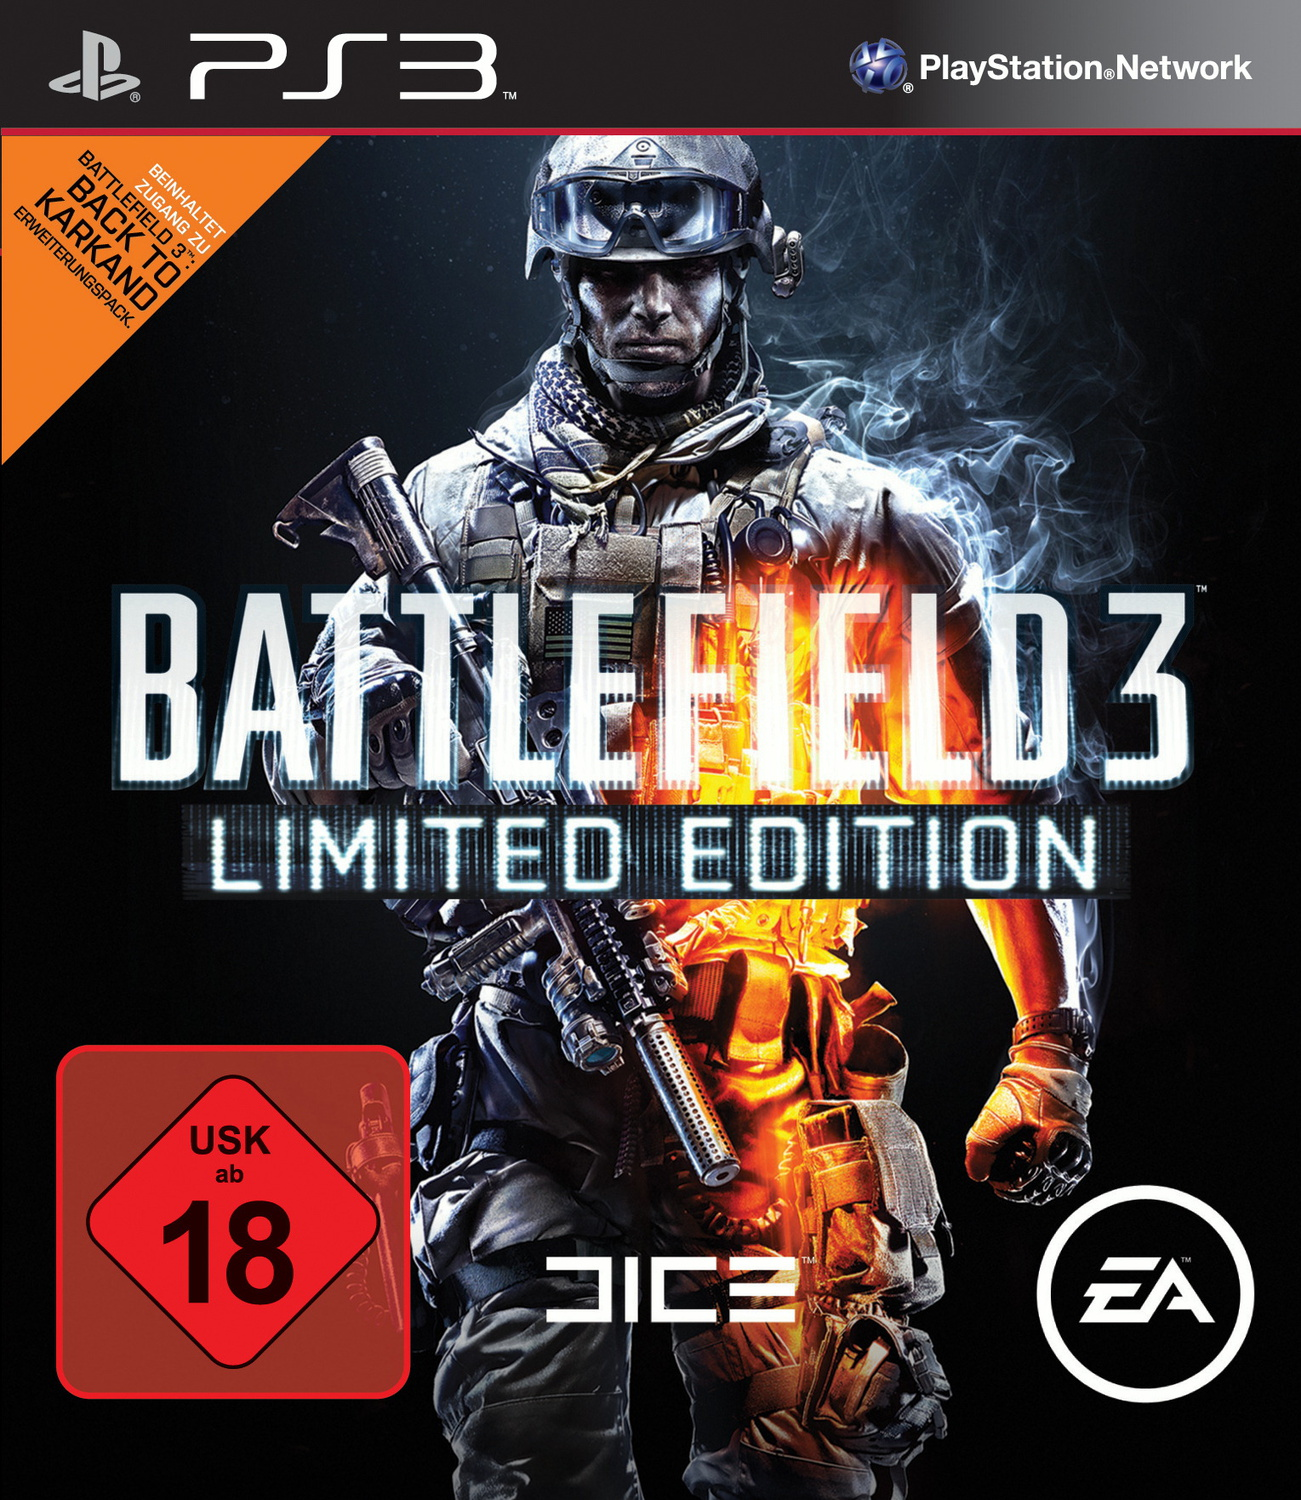 Battlefield 3 [Limited Edition]